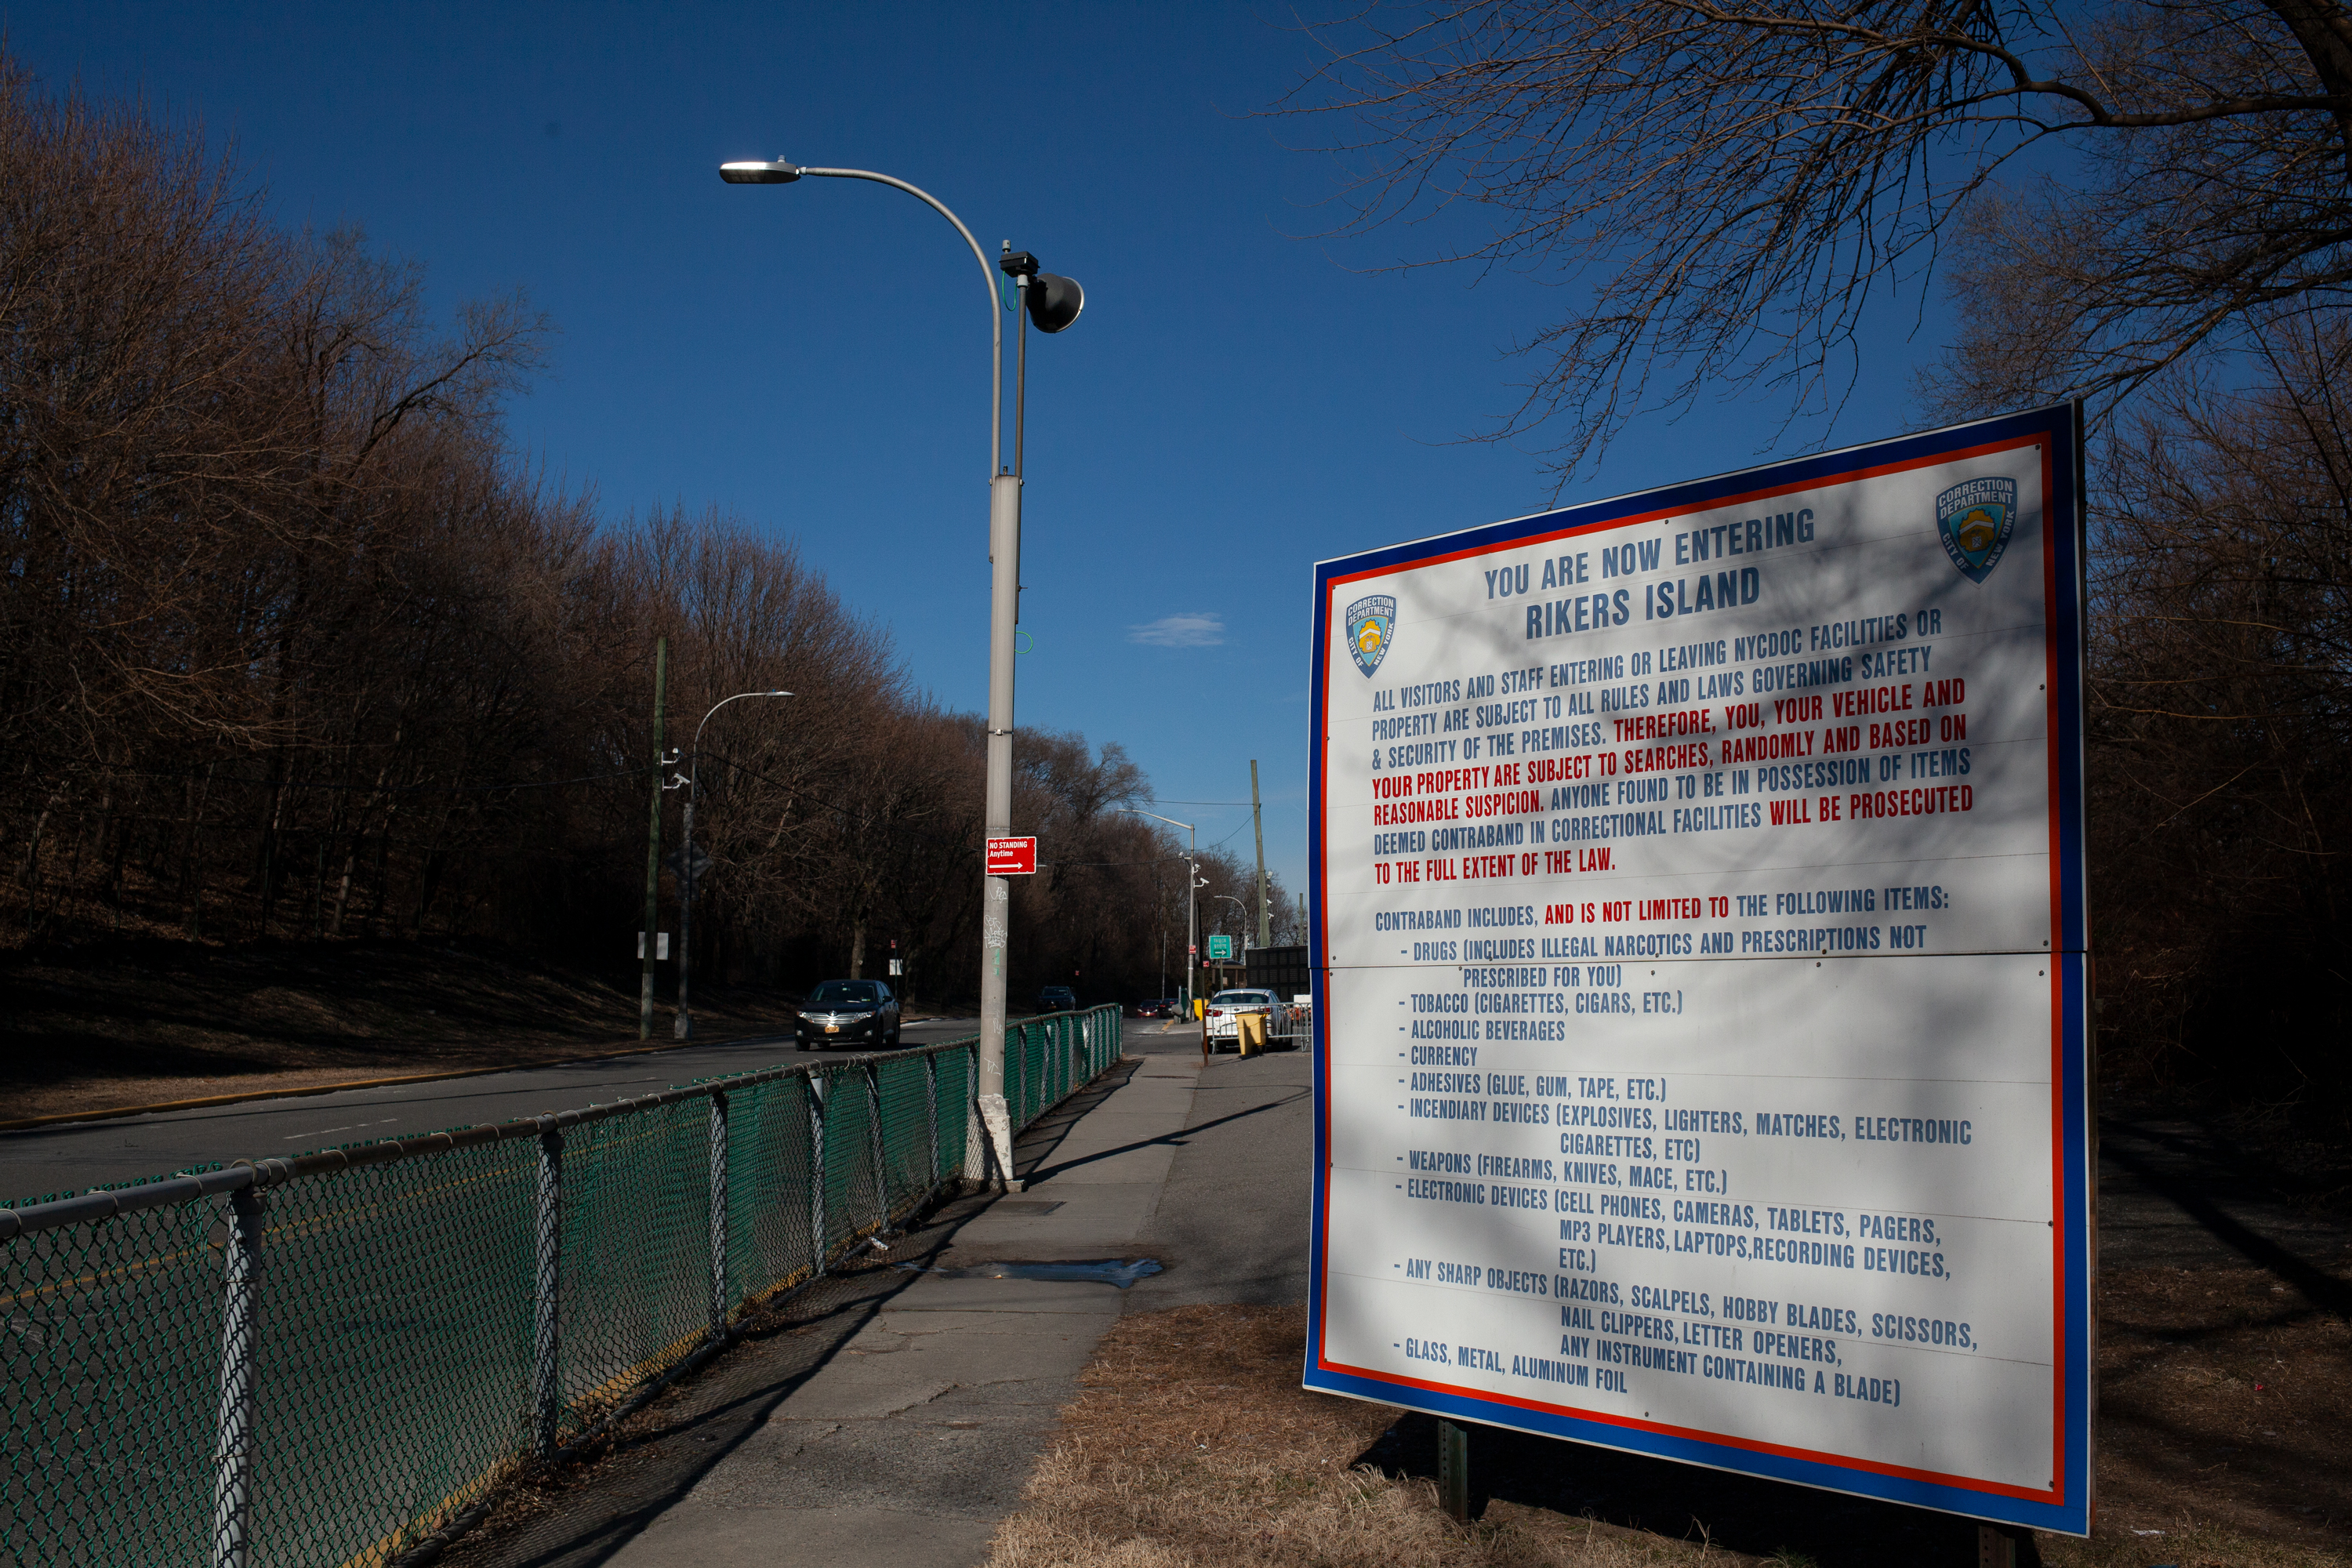 A sign at the entrance to Rikers Island warns about the strict policies for entering the jail complex, Jan. 22, 2019.